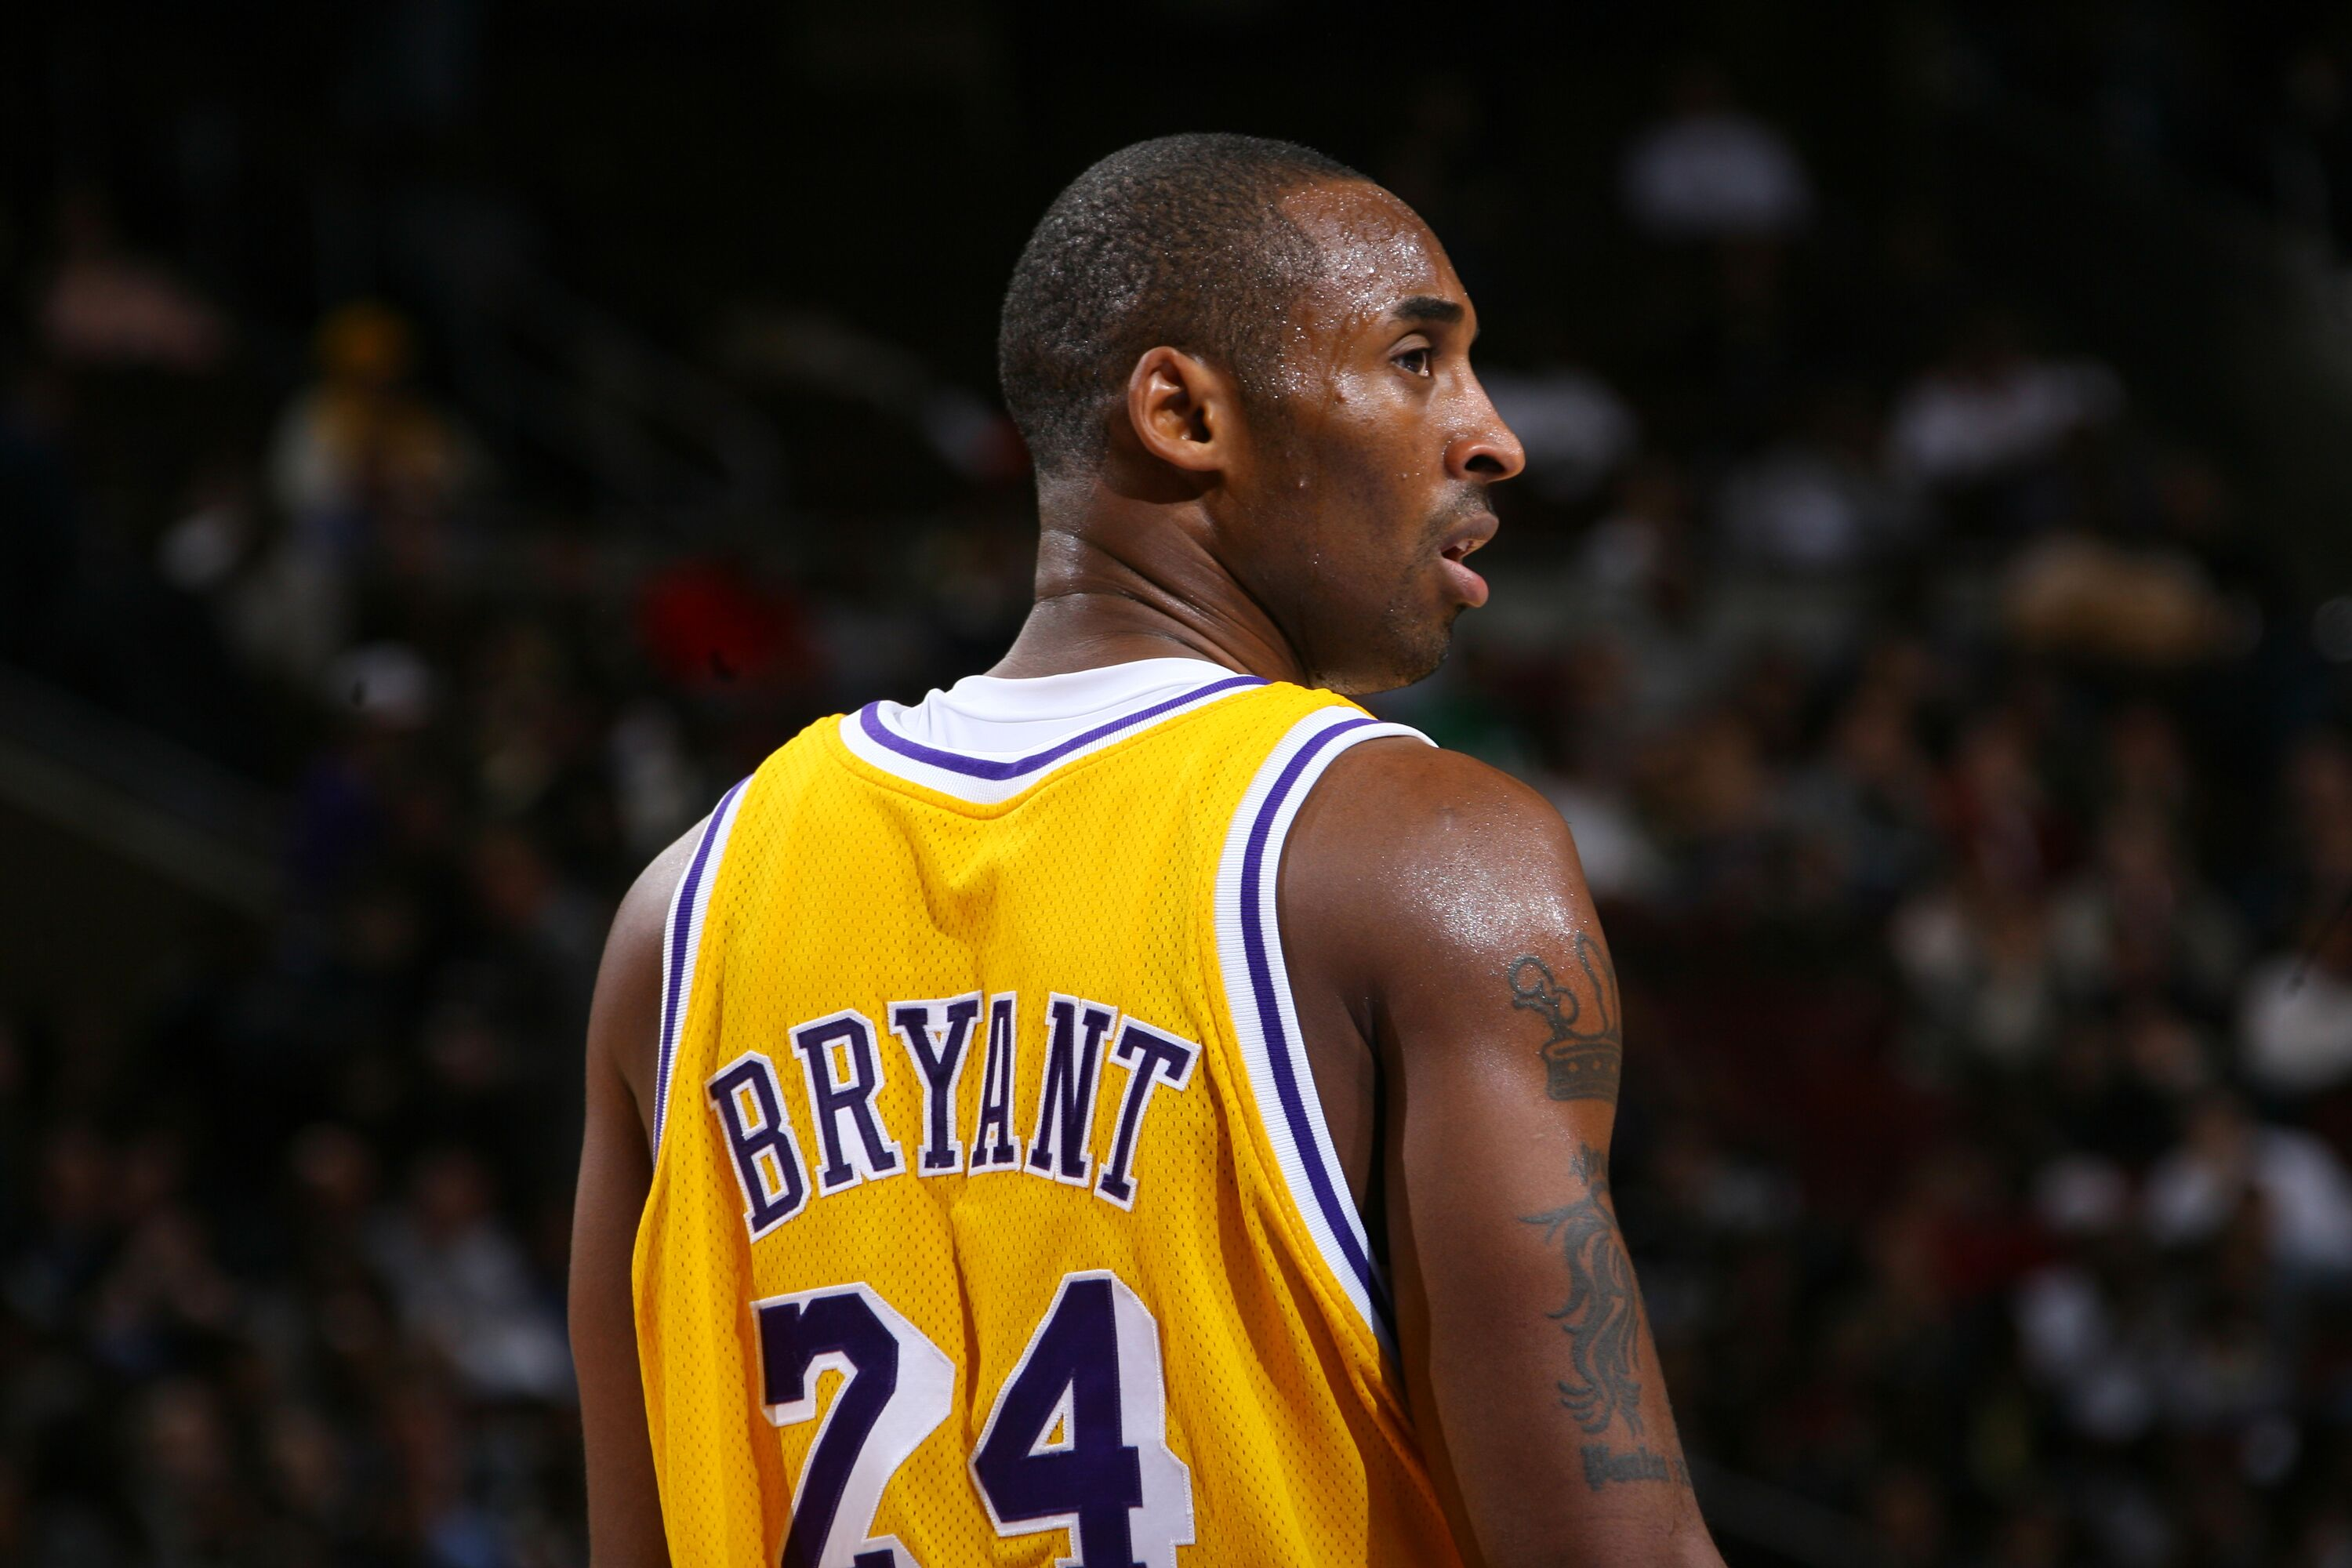 Kobe Bryant at an LA Lakers game | Source: Getty Images/GlobalImagesUkraine